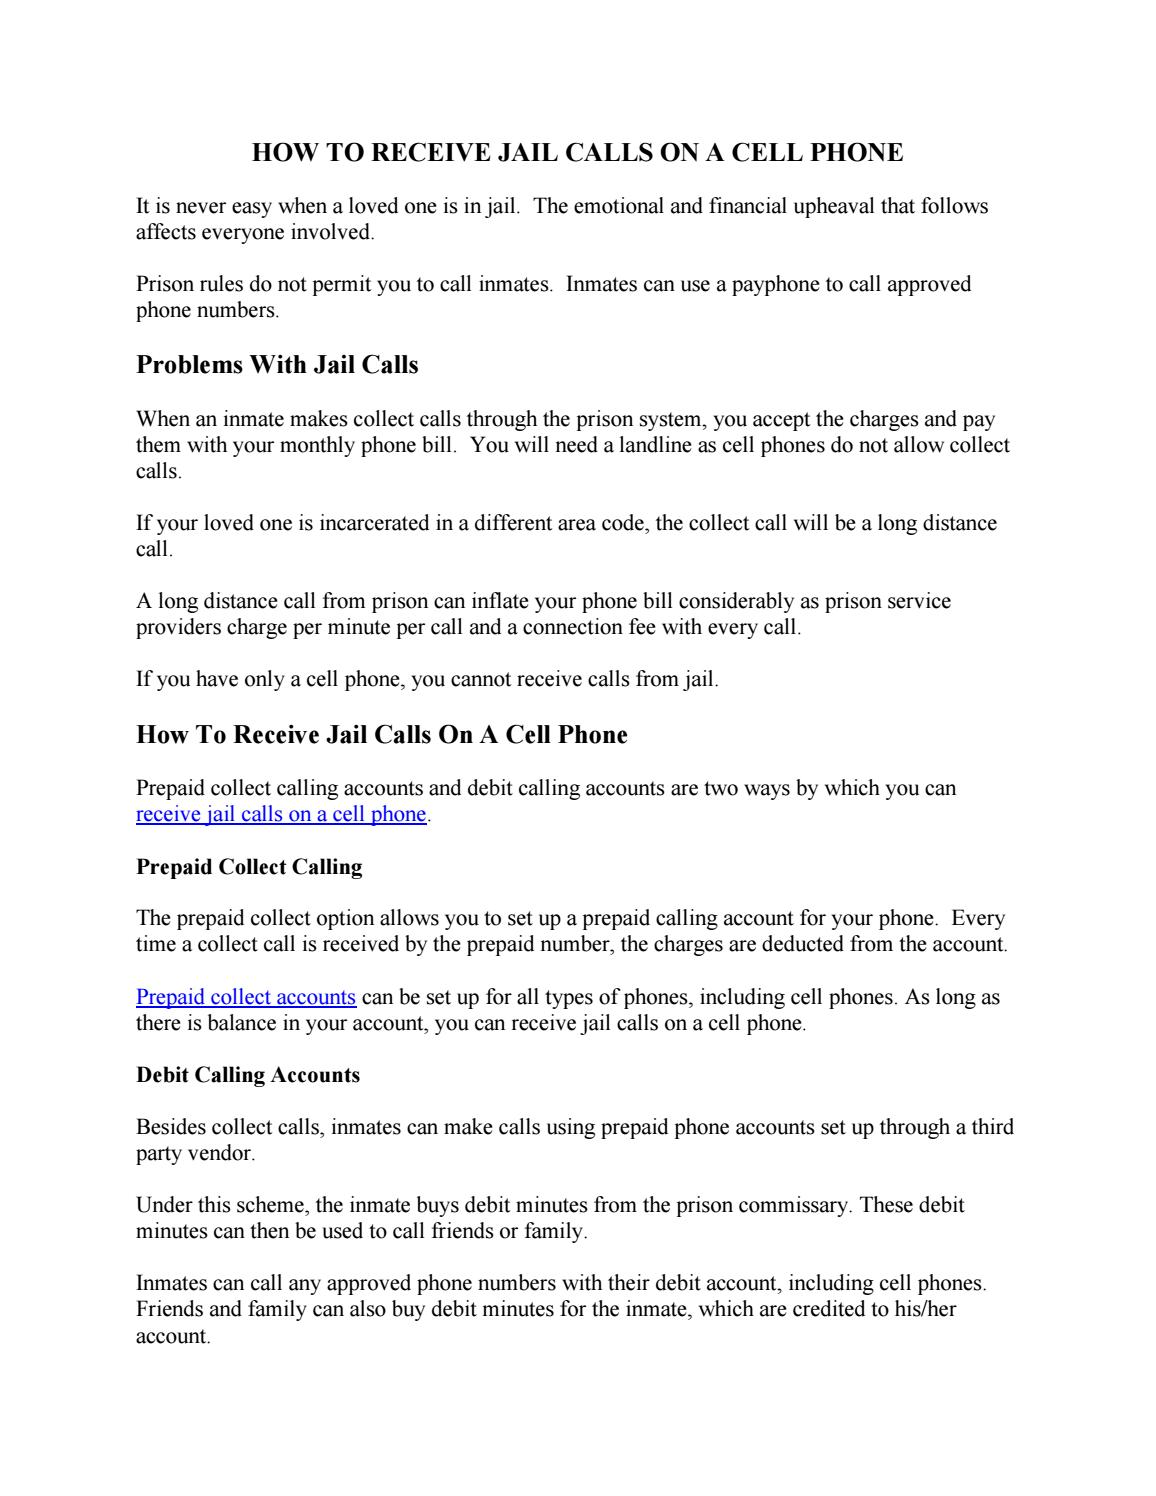 Receive Jail Calls On A Cell Phone by FedPhoneLine - issuu